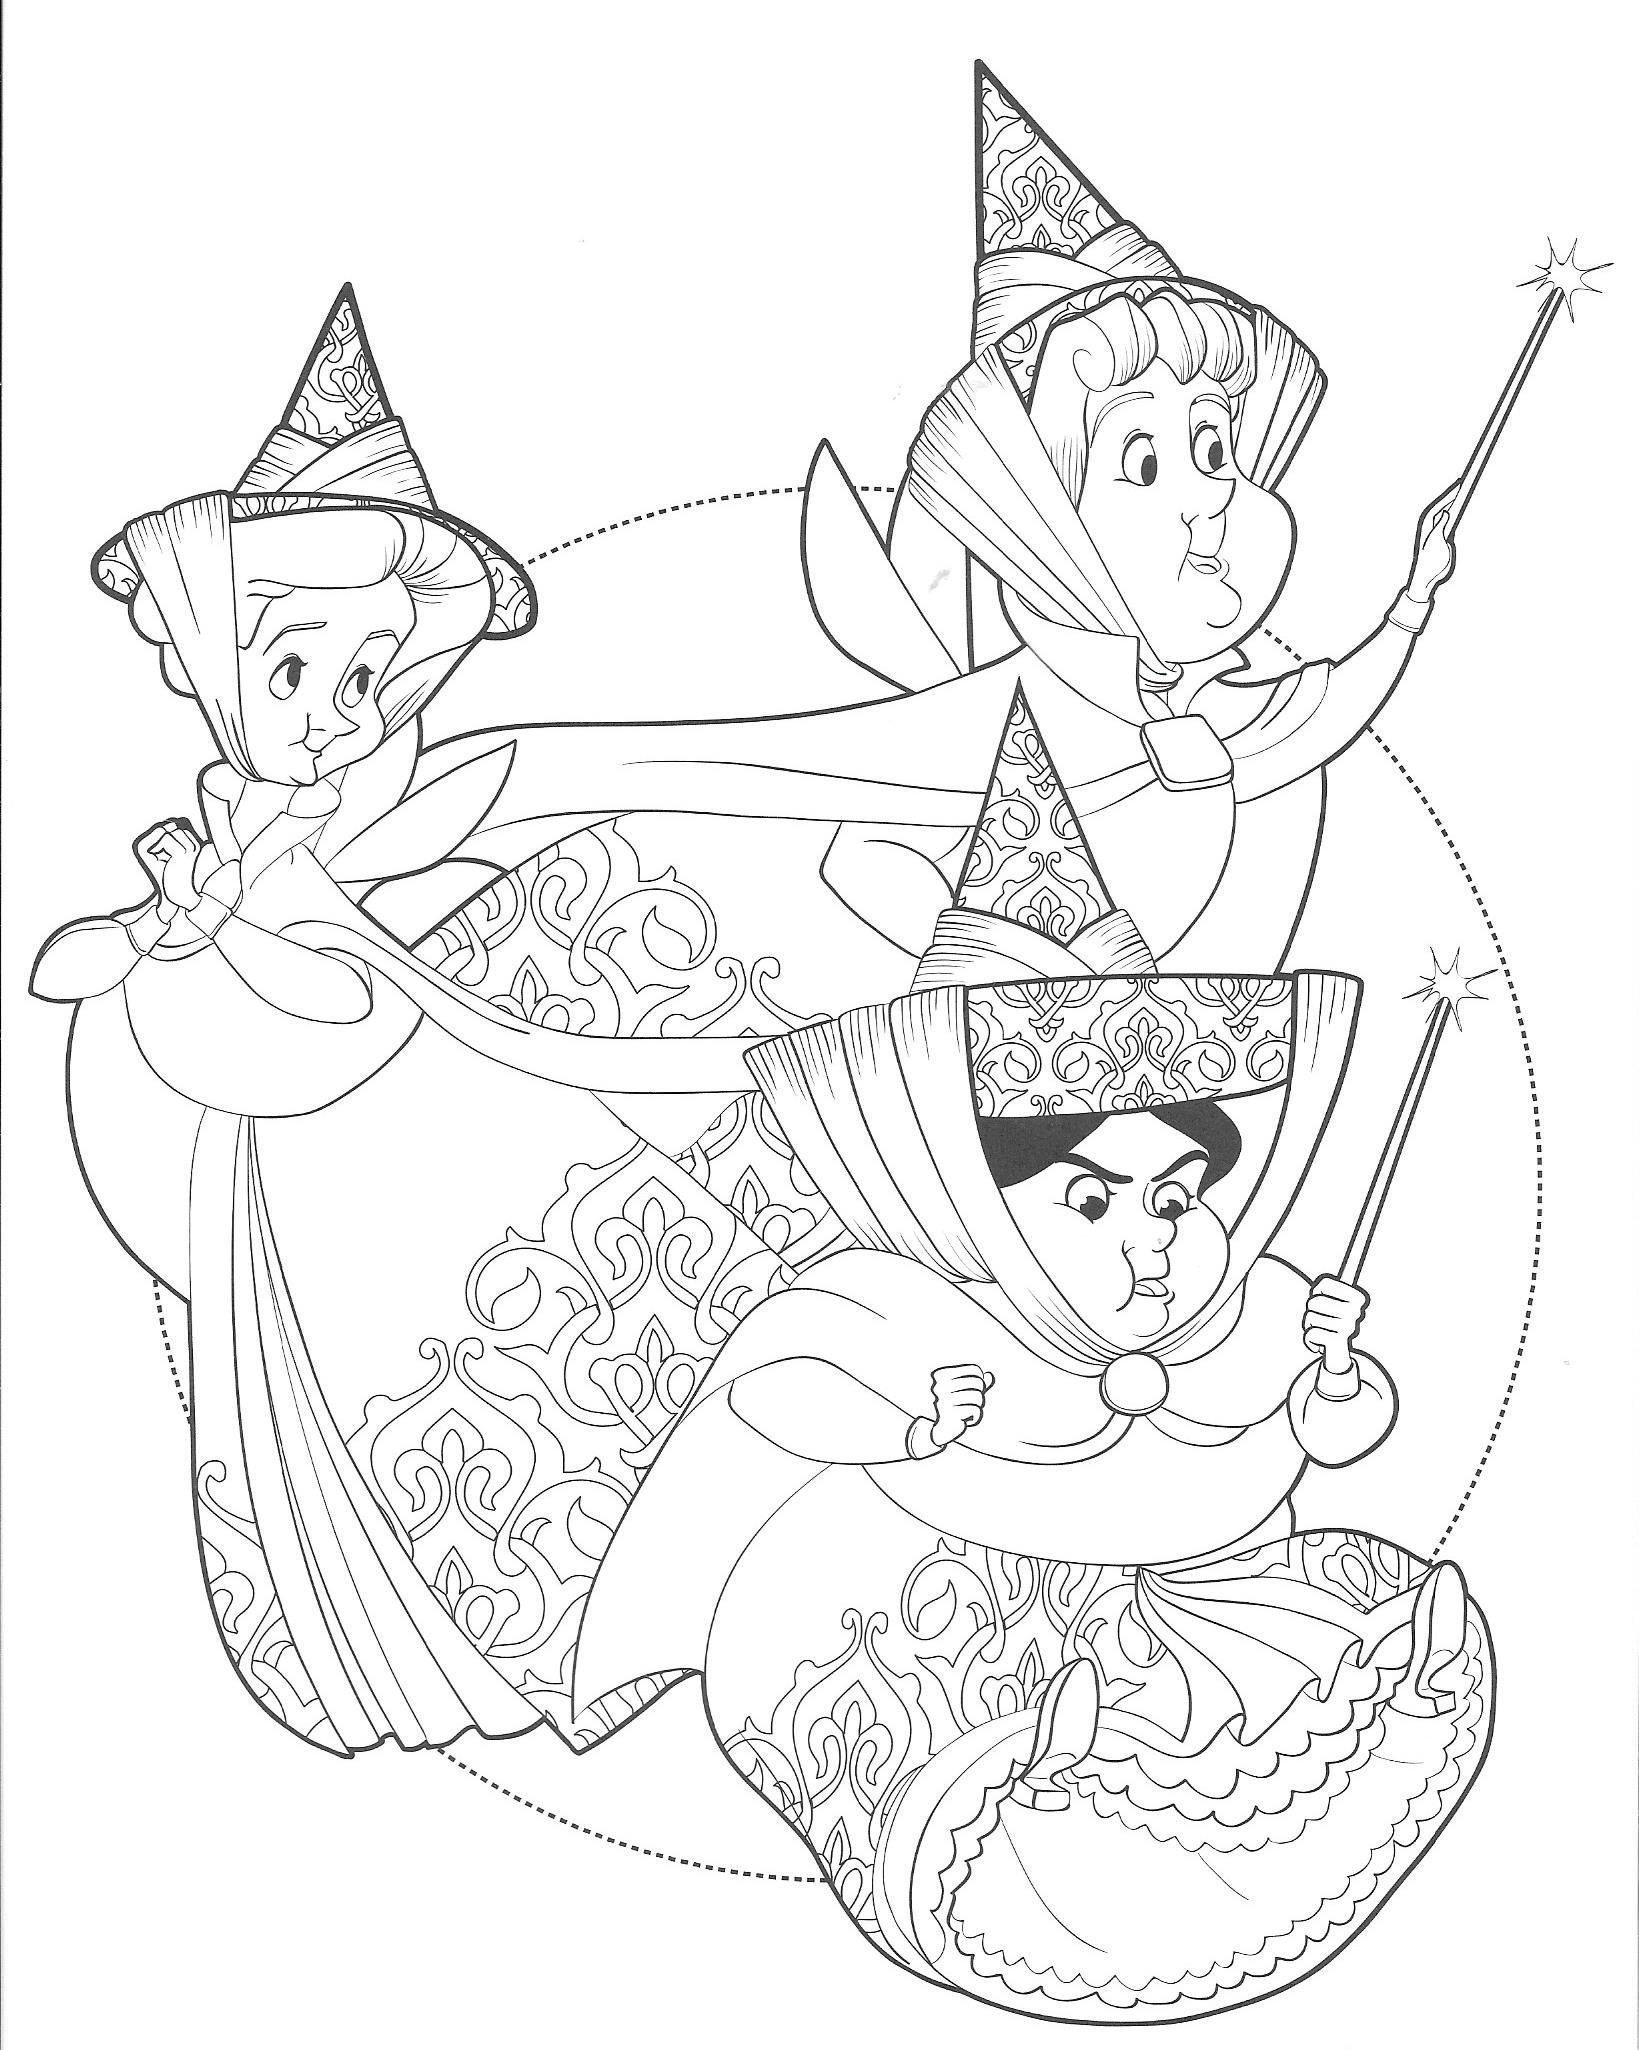 Pin By Carmen Rodriguez On Coloring Pages And Fun Images To Creation Coloring Pages Cartoon Coloring Pages Disney Coloring Pages